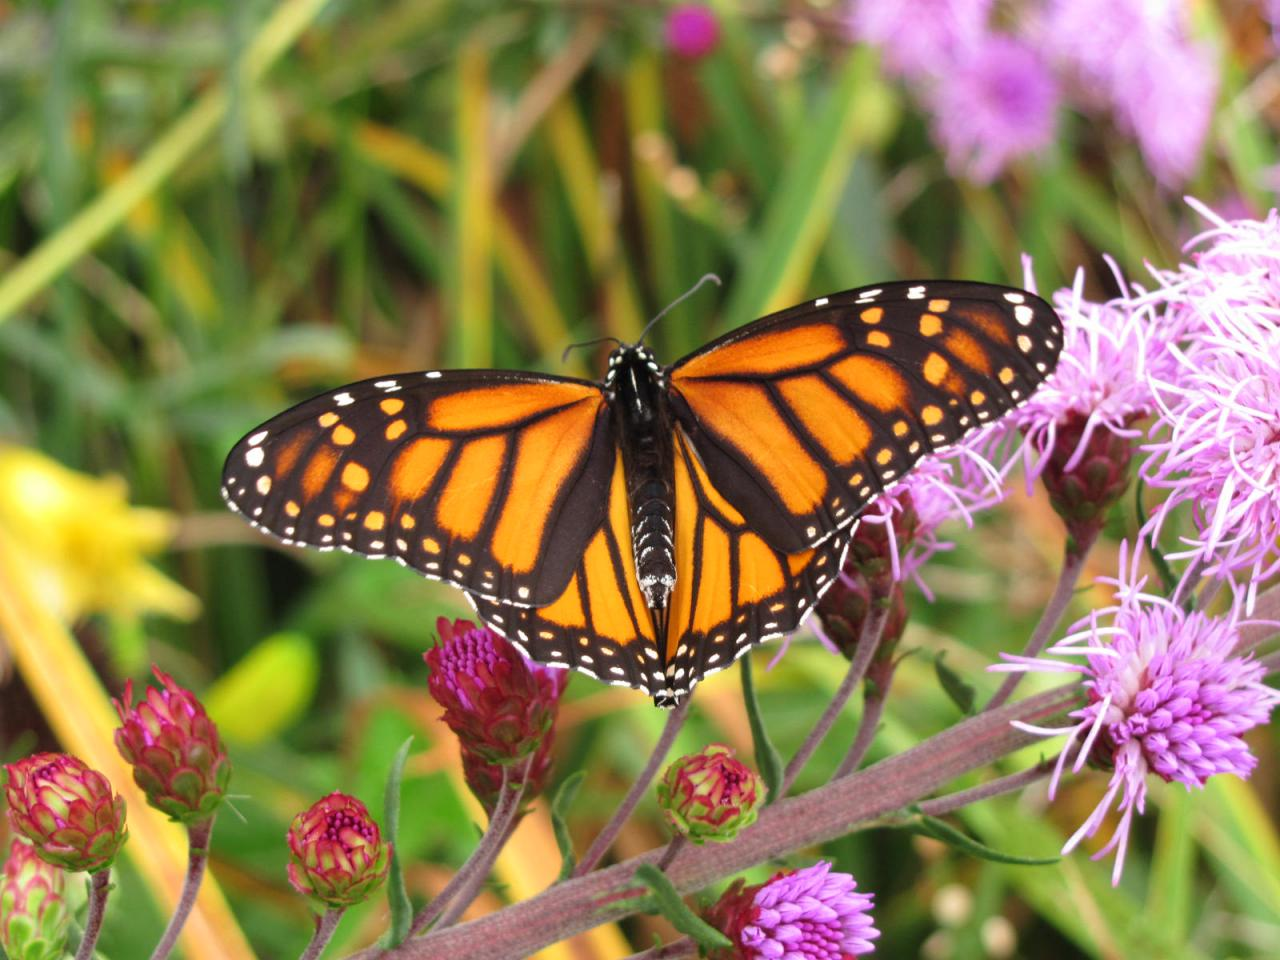 A monarch enjoying a beautiful rain garden